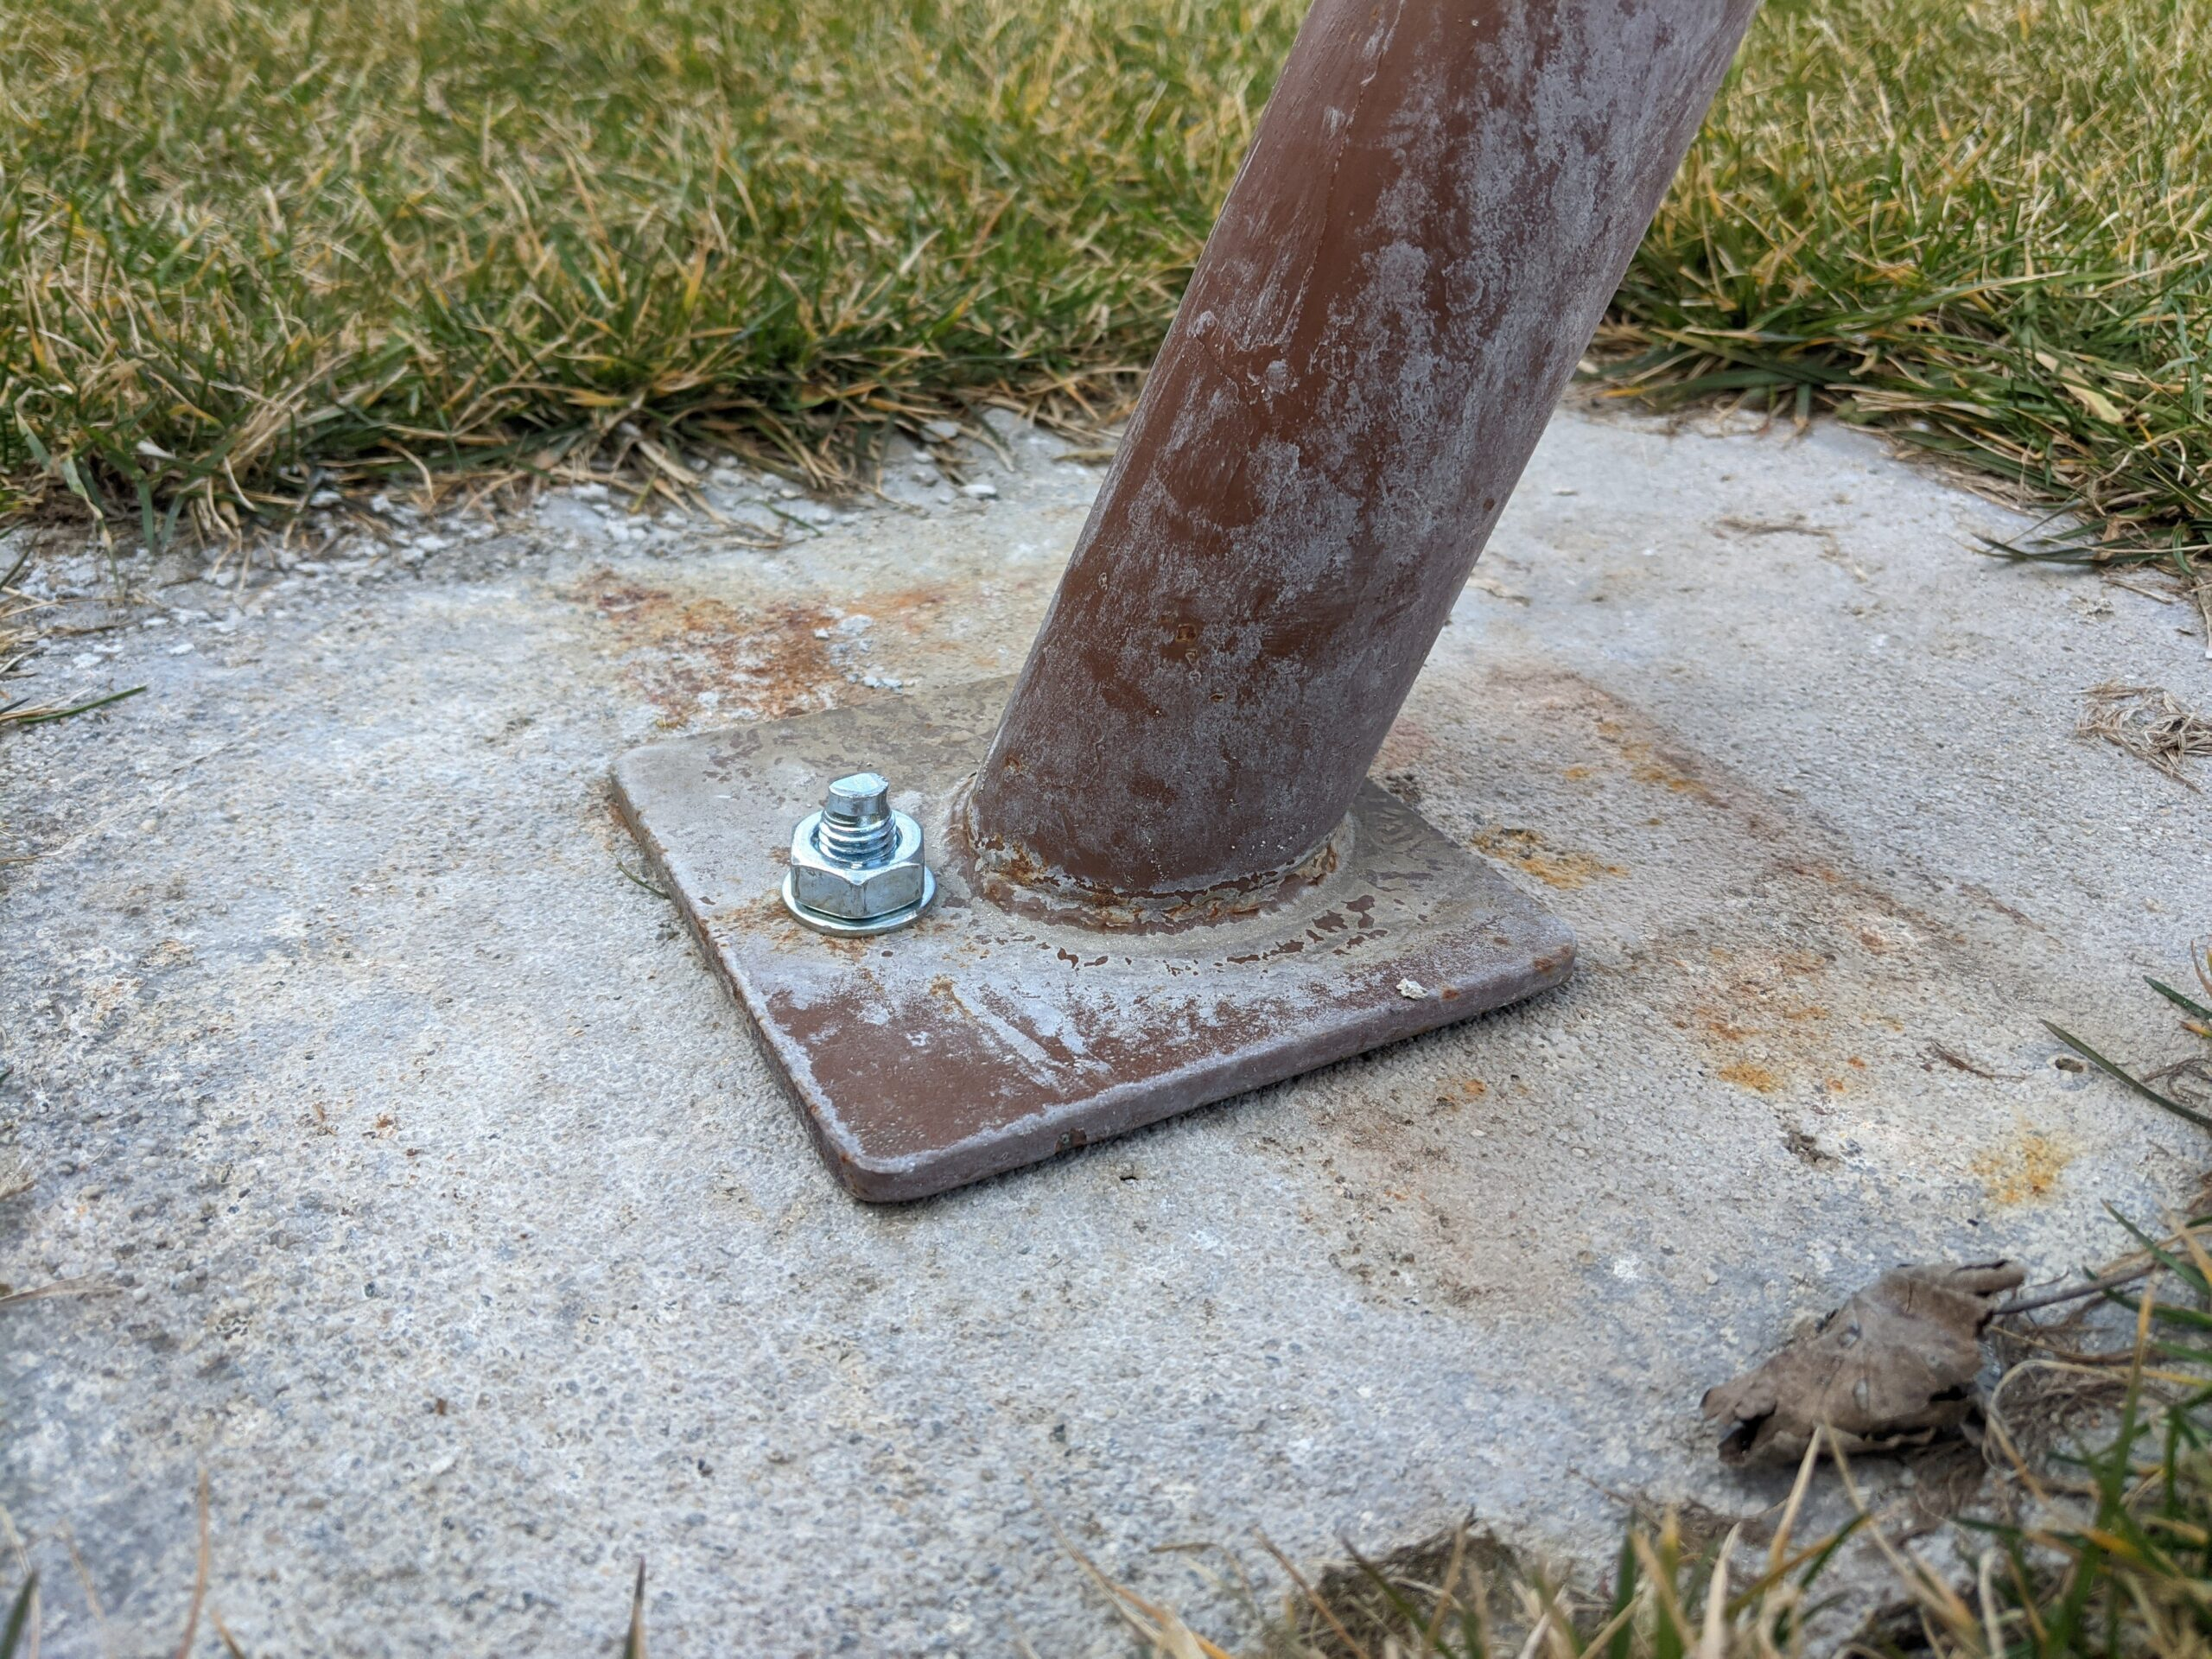 Sharp bolt end protruding from the ground